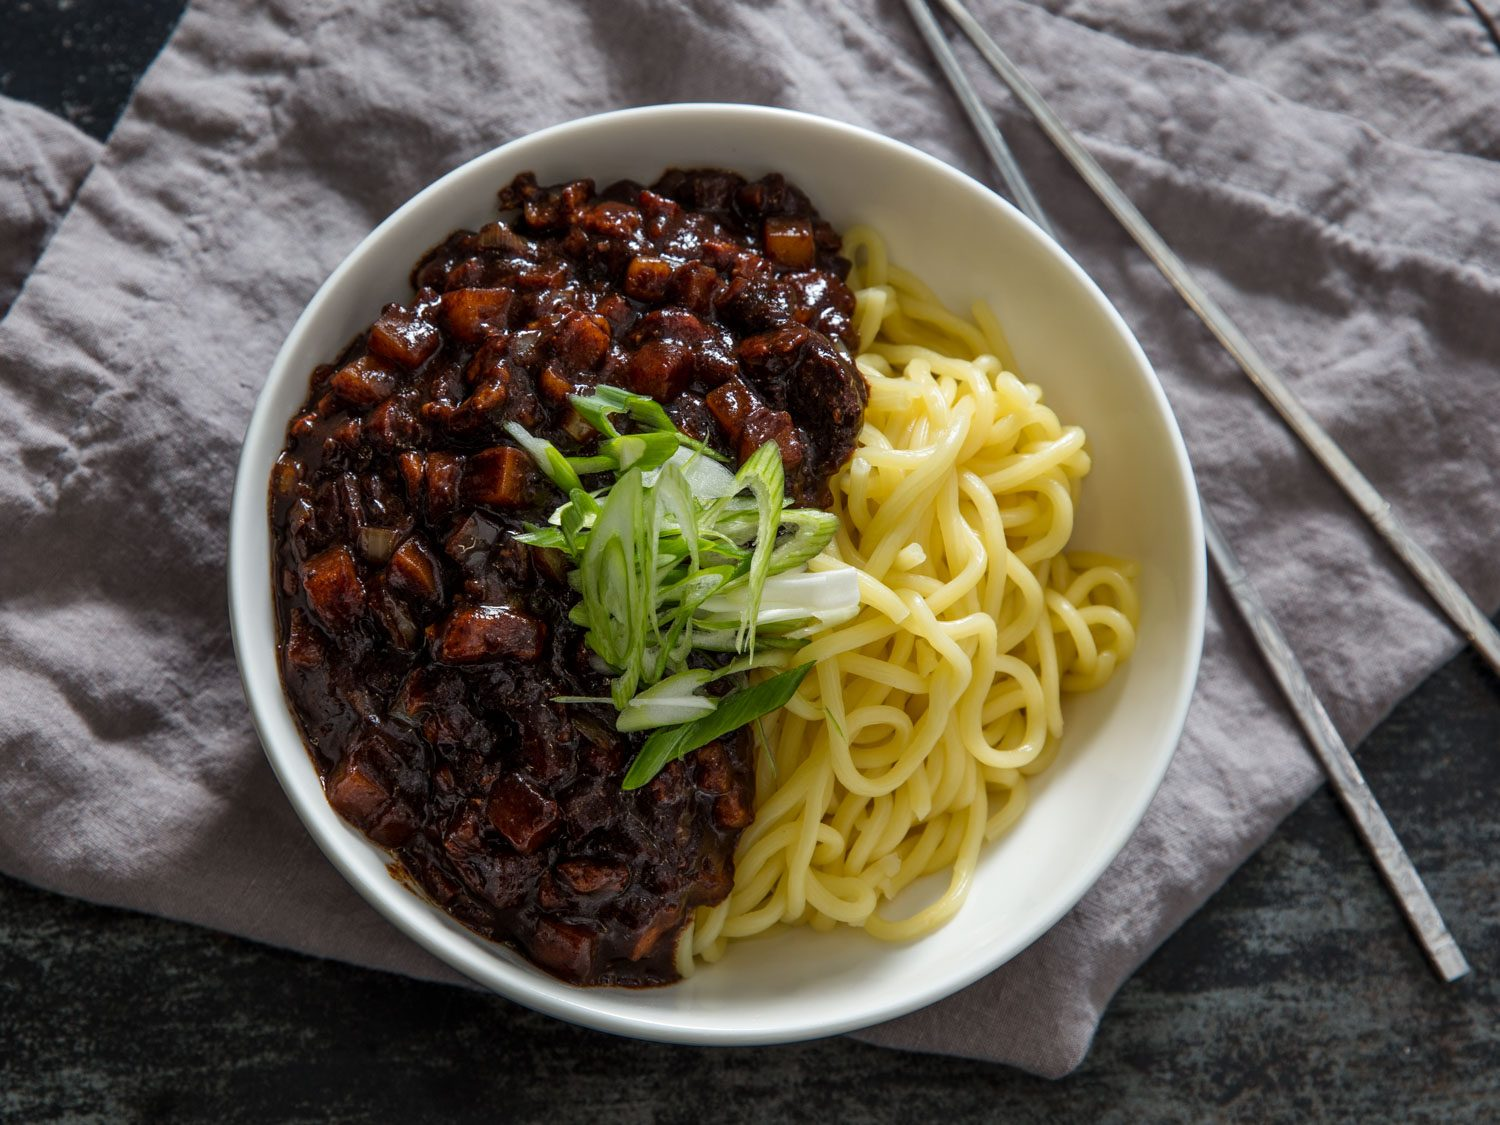 Jjajangmyeon (Korean Black Bean Noodles)